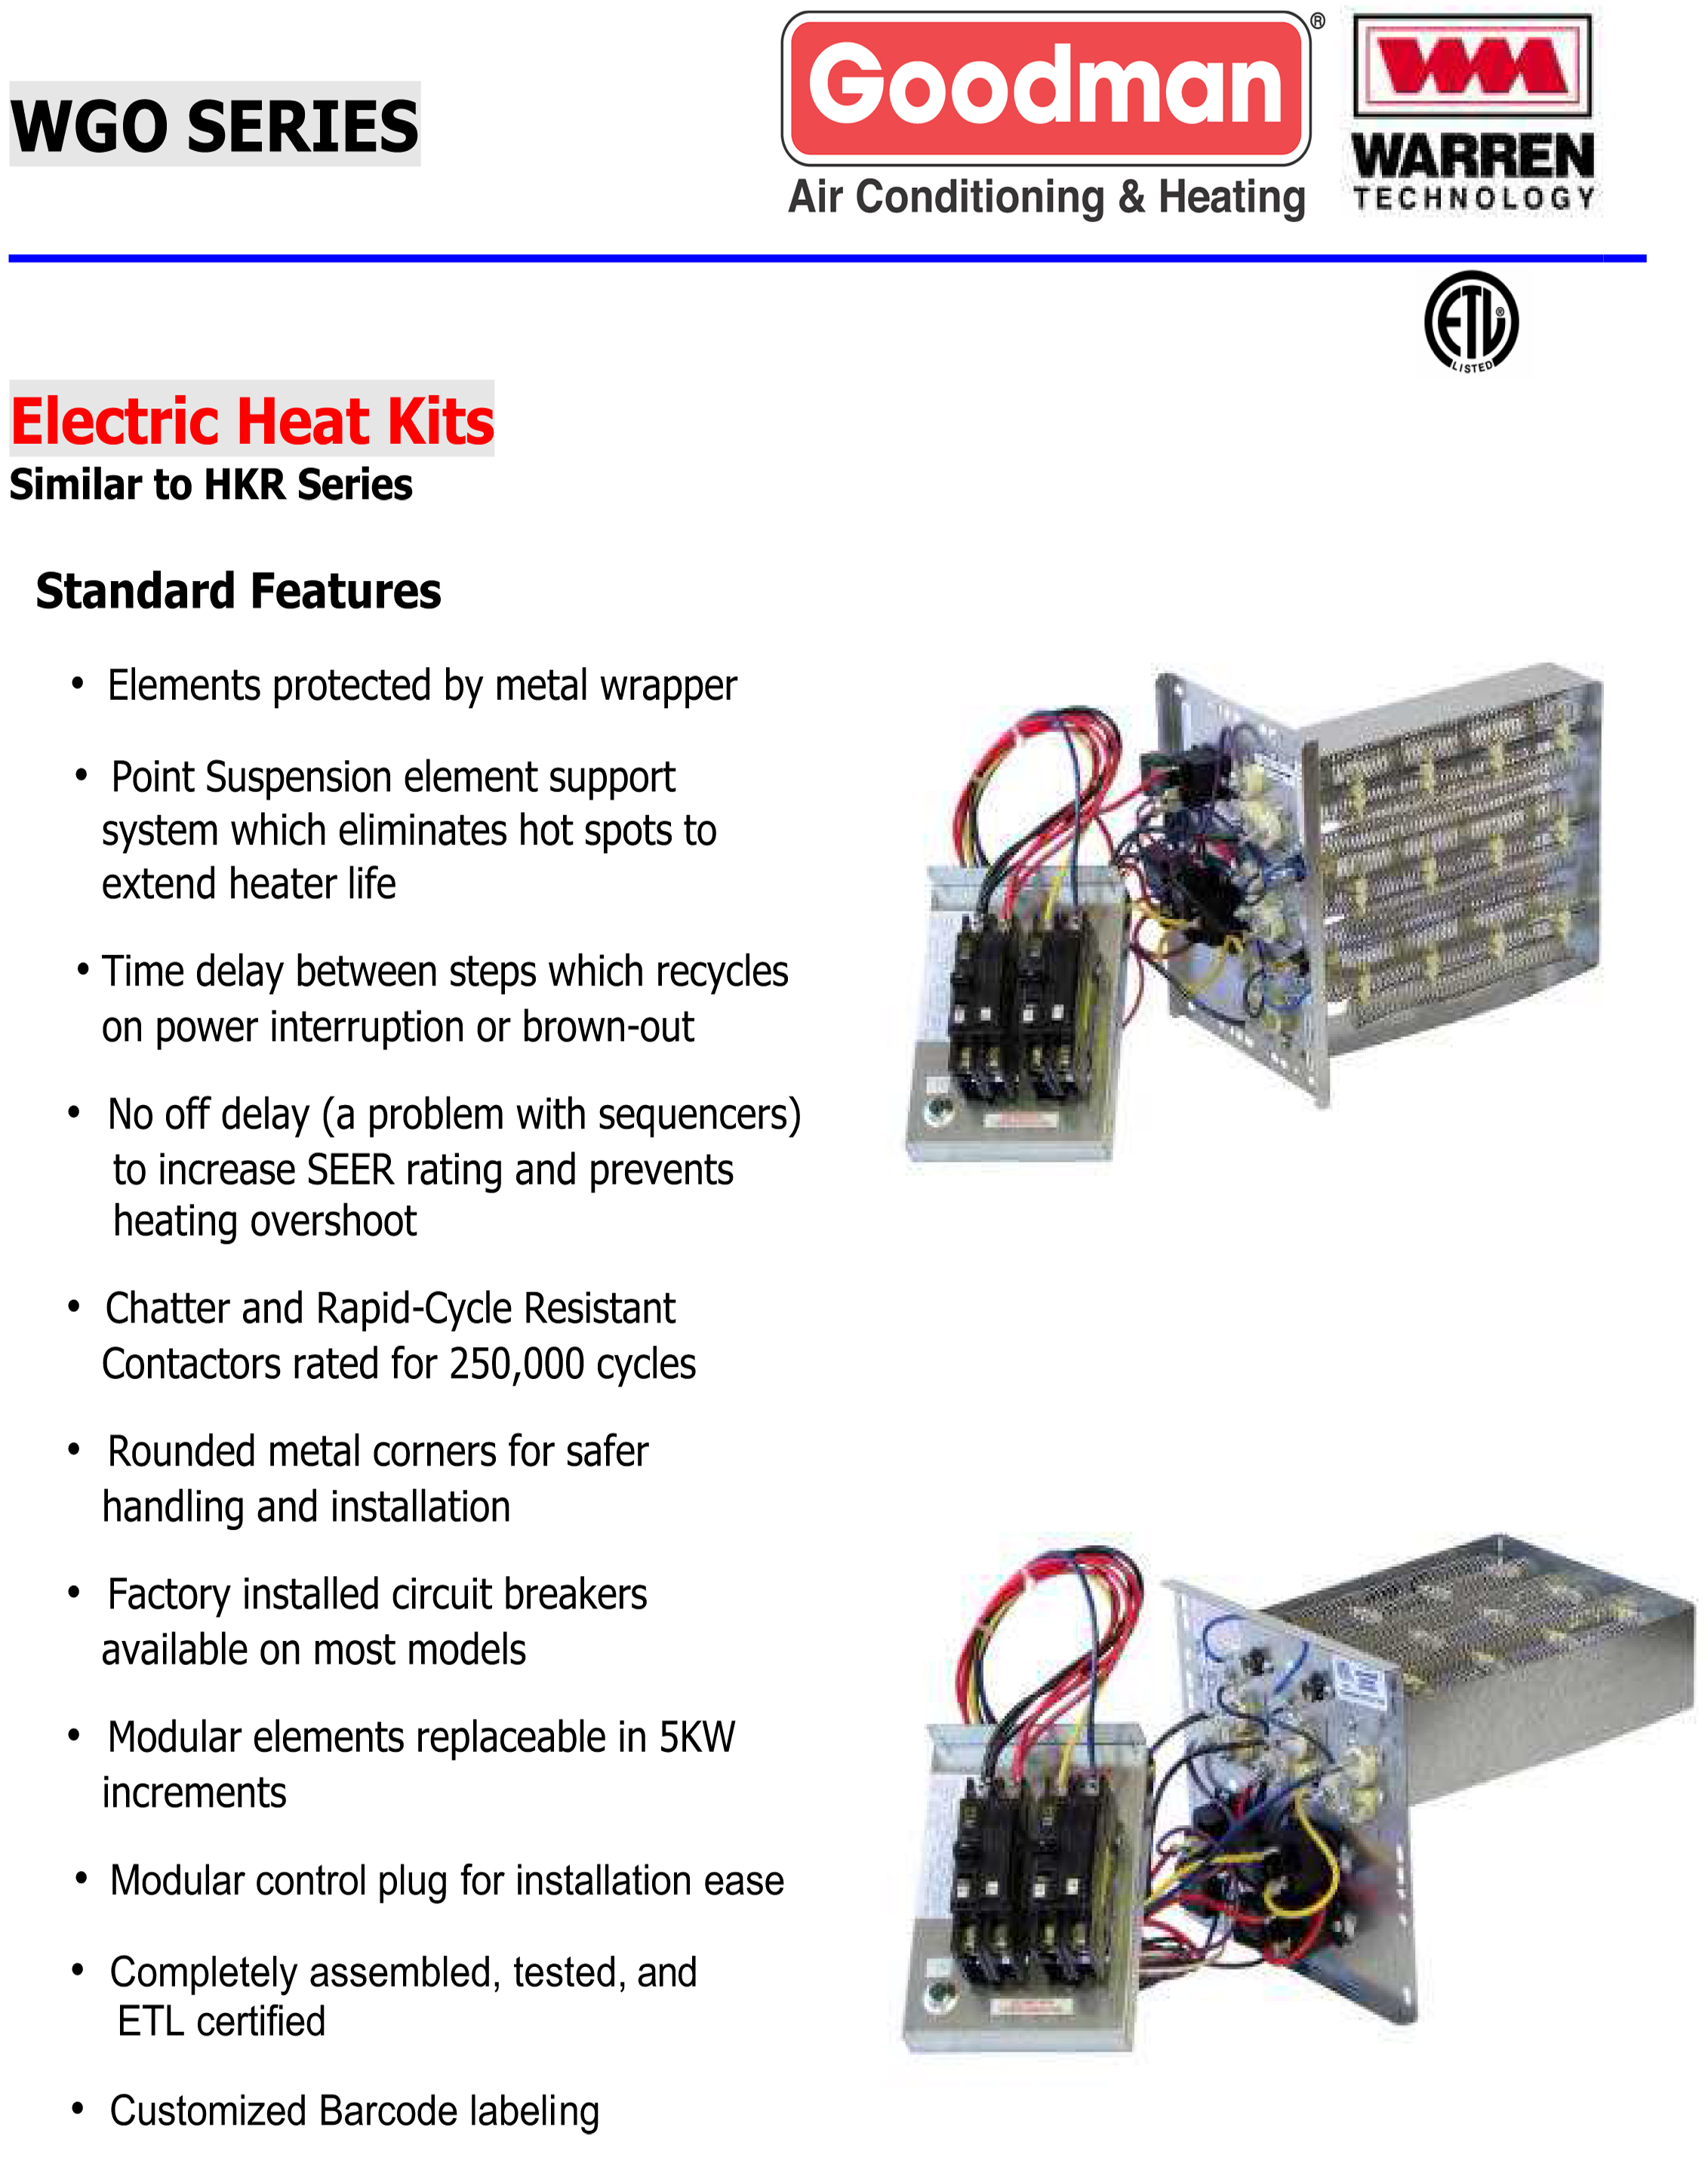 goodman wgo brochure goodman hkr 10 wiring diagram goodman air handler \u2022 wiring goodman a30-15 wiring diagram at webbmarketing.co